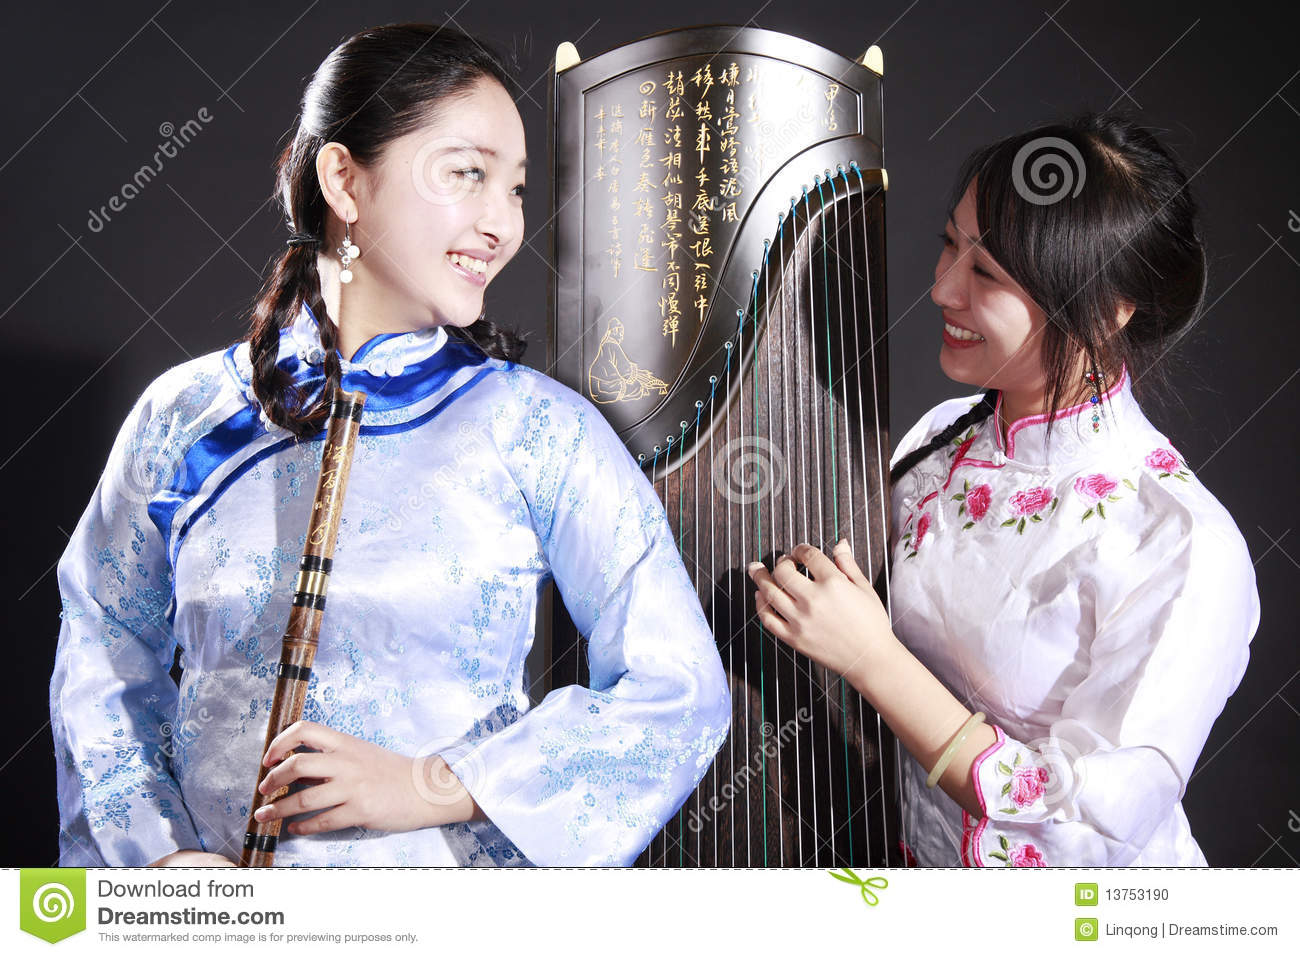 Two young musicians